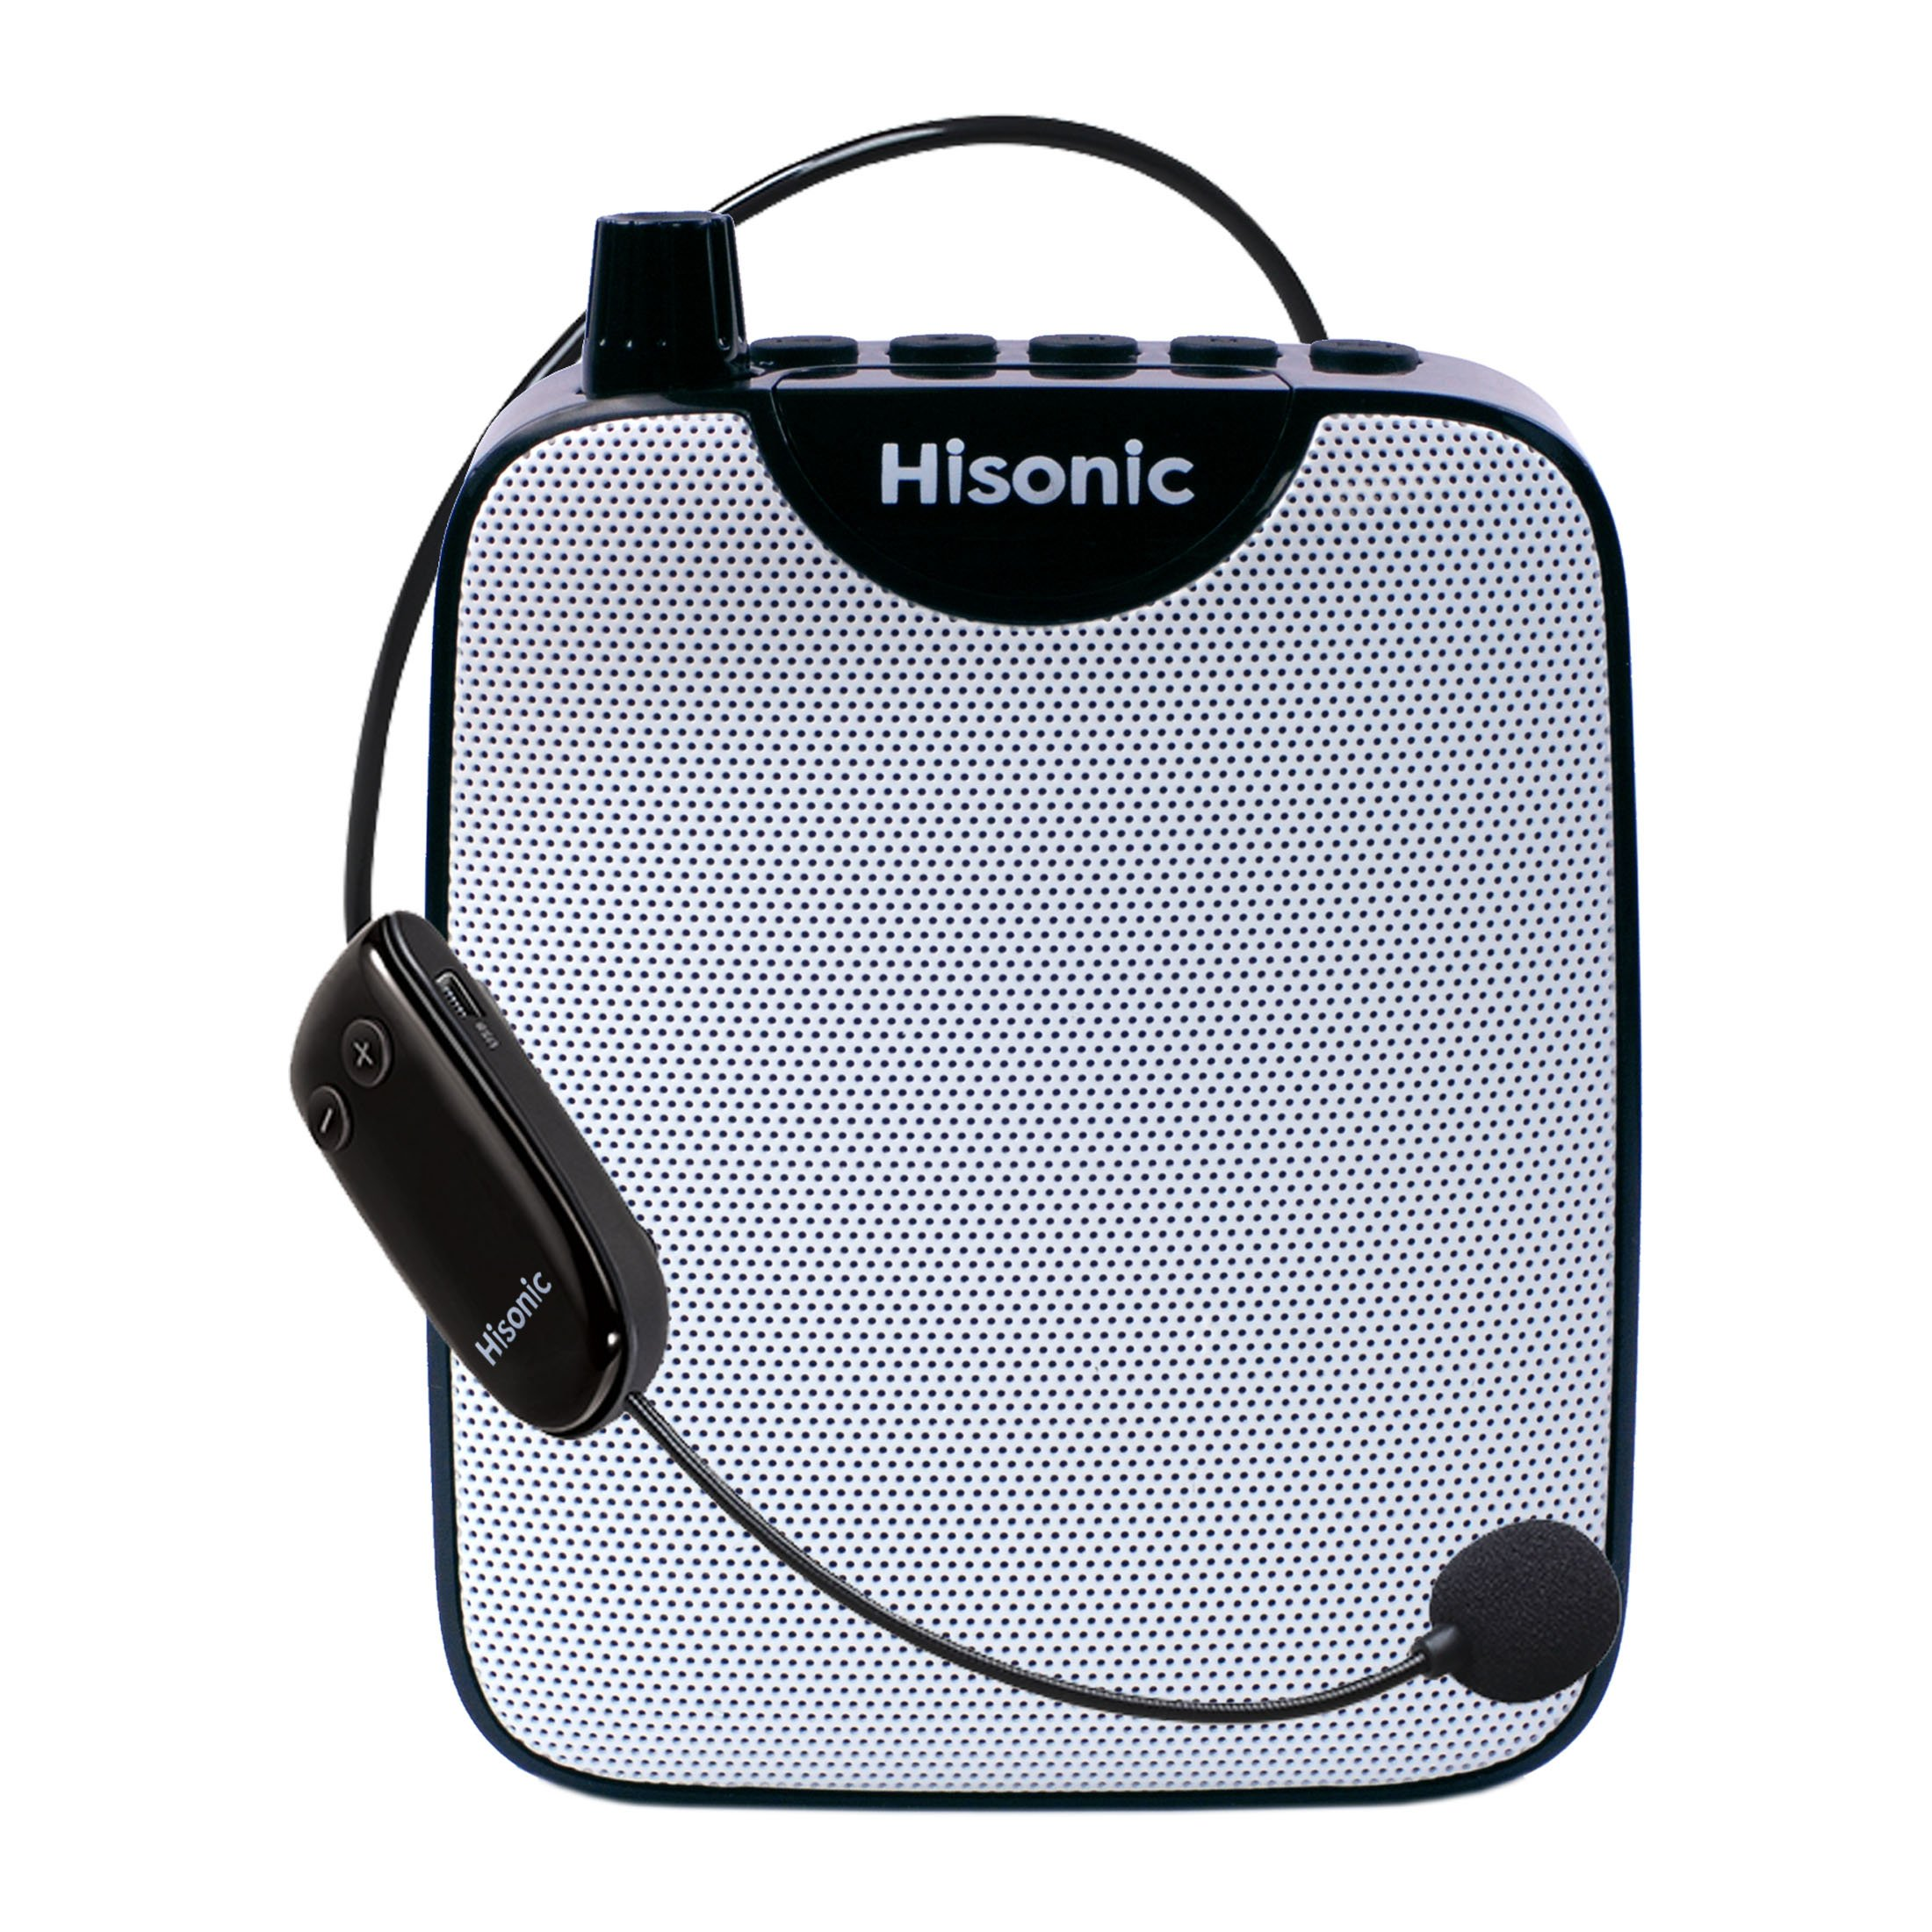 Hisonic HS388U Waistband Voice Amplifier: 3-in-1 Mini Portable PA System with UHF Wireless Headset Microphone + Portable Speaker + Digital Voice Recorder (10 Watts)